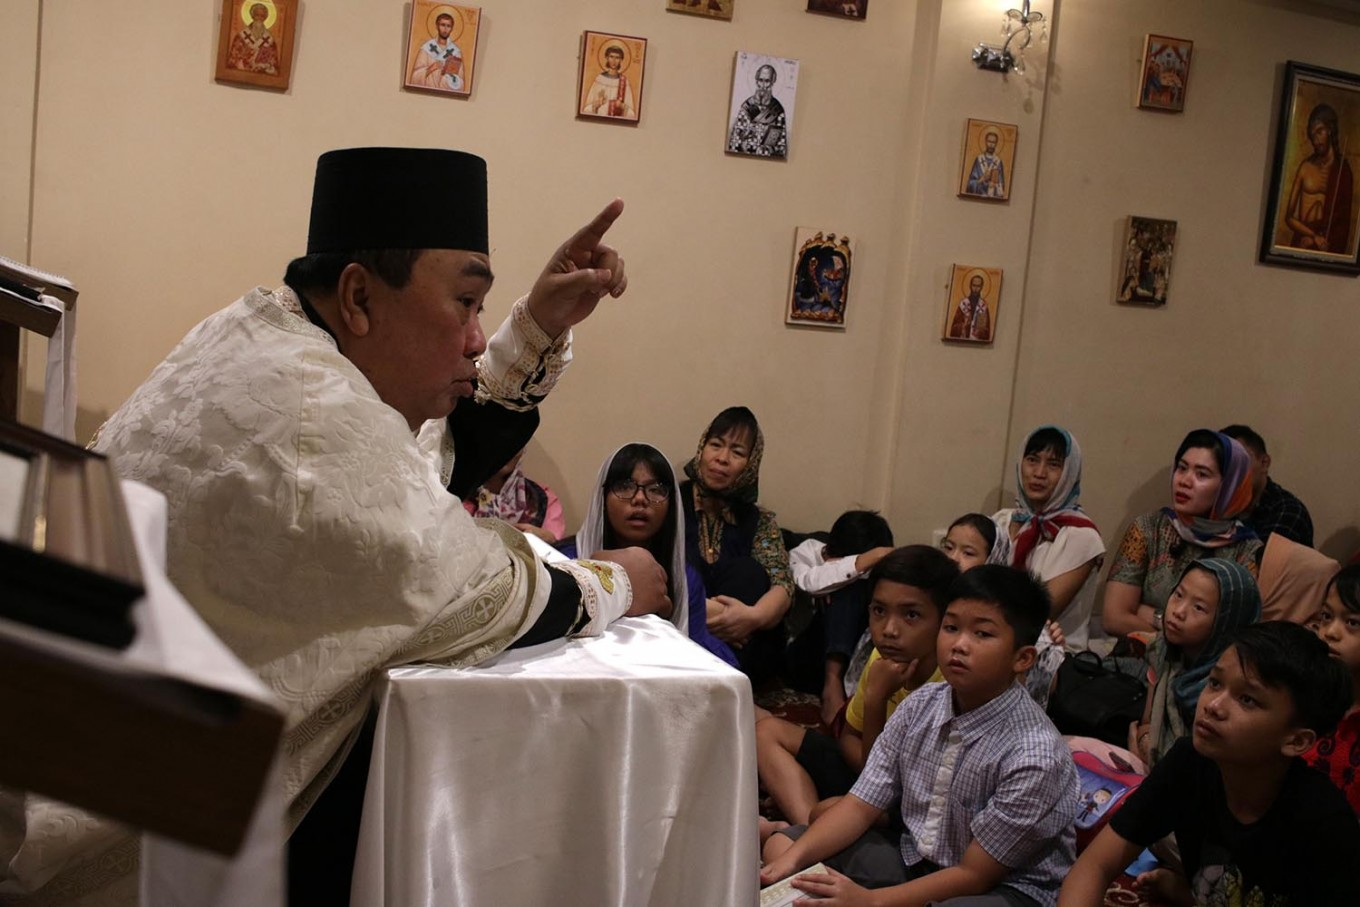 Servitude: Archimandrite Daniel Byantoro gives a sermon at the Janasuci Petrus & Paulus Church in Tangerang, Banten. JP/ Taufan Wijaya